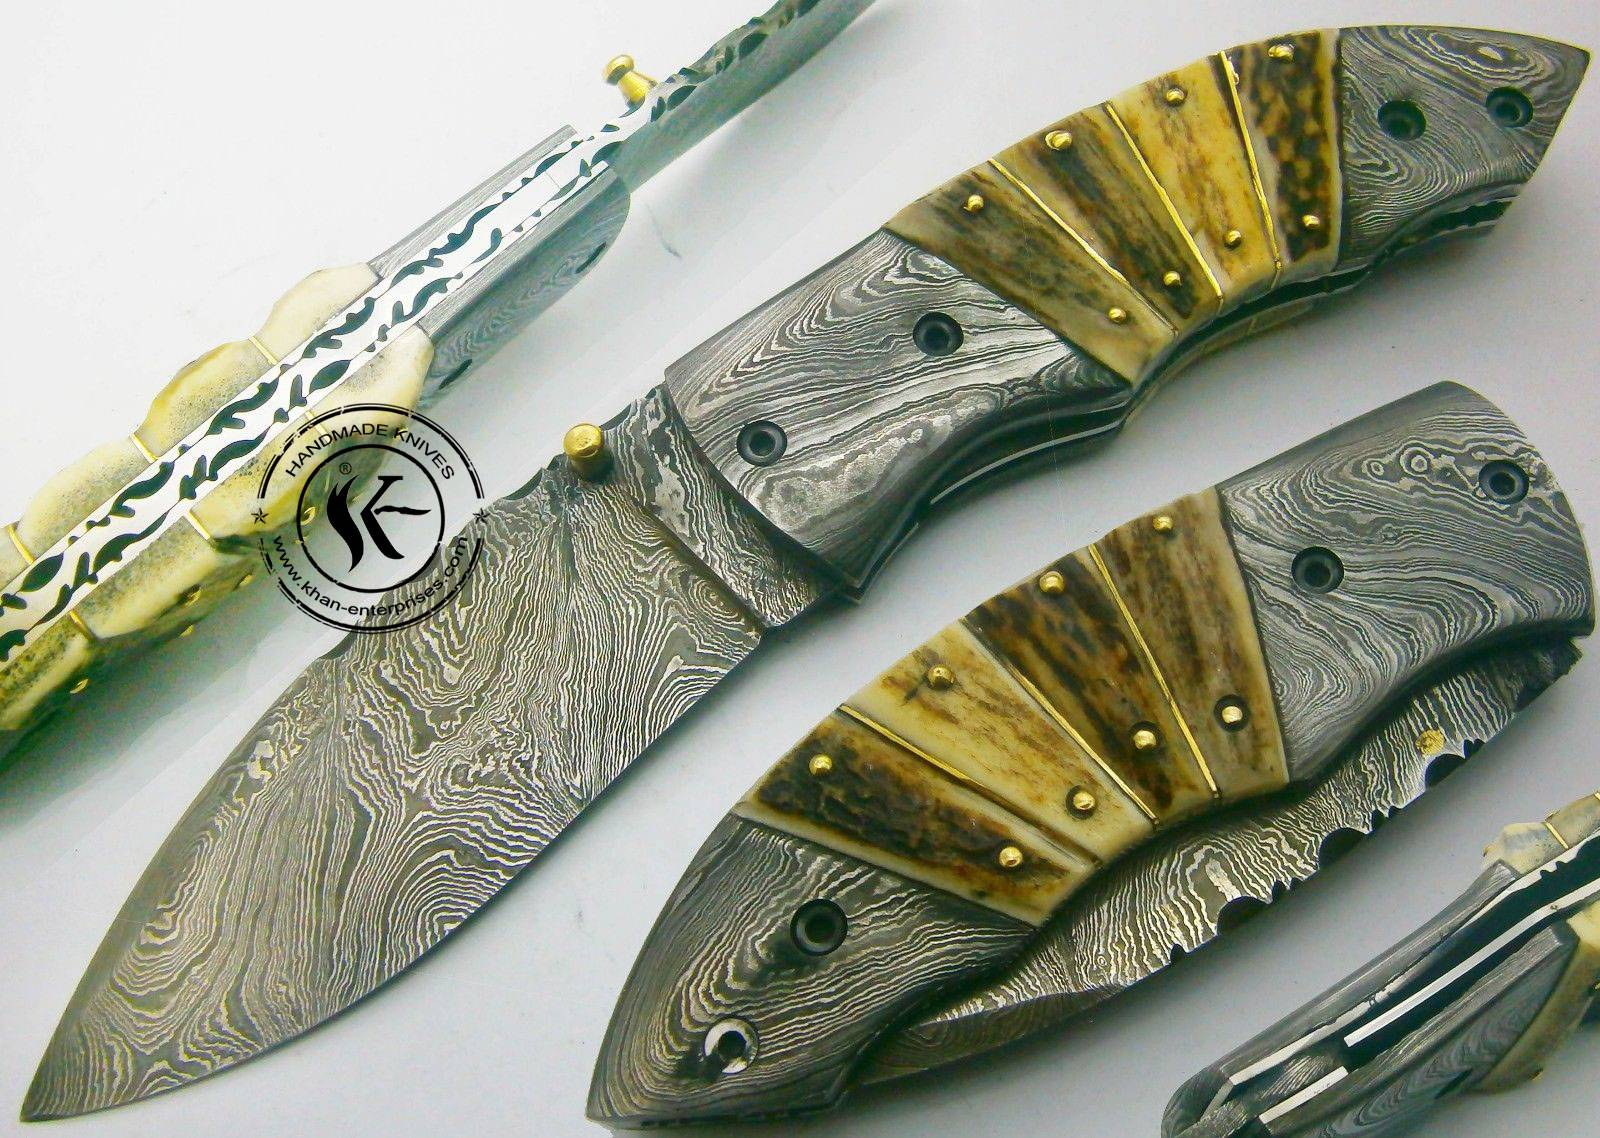 Awesome, Custom hand made beautiful damascus steel folding knife